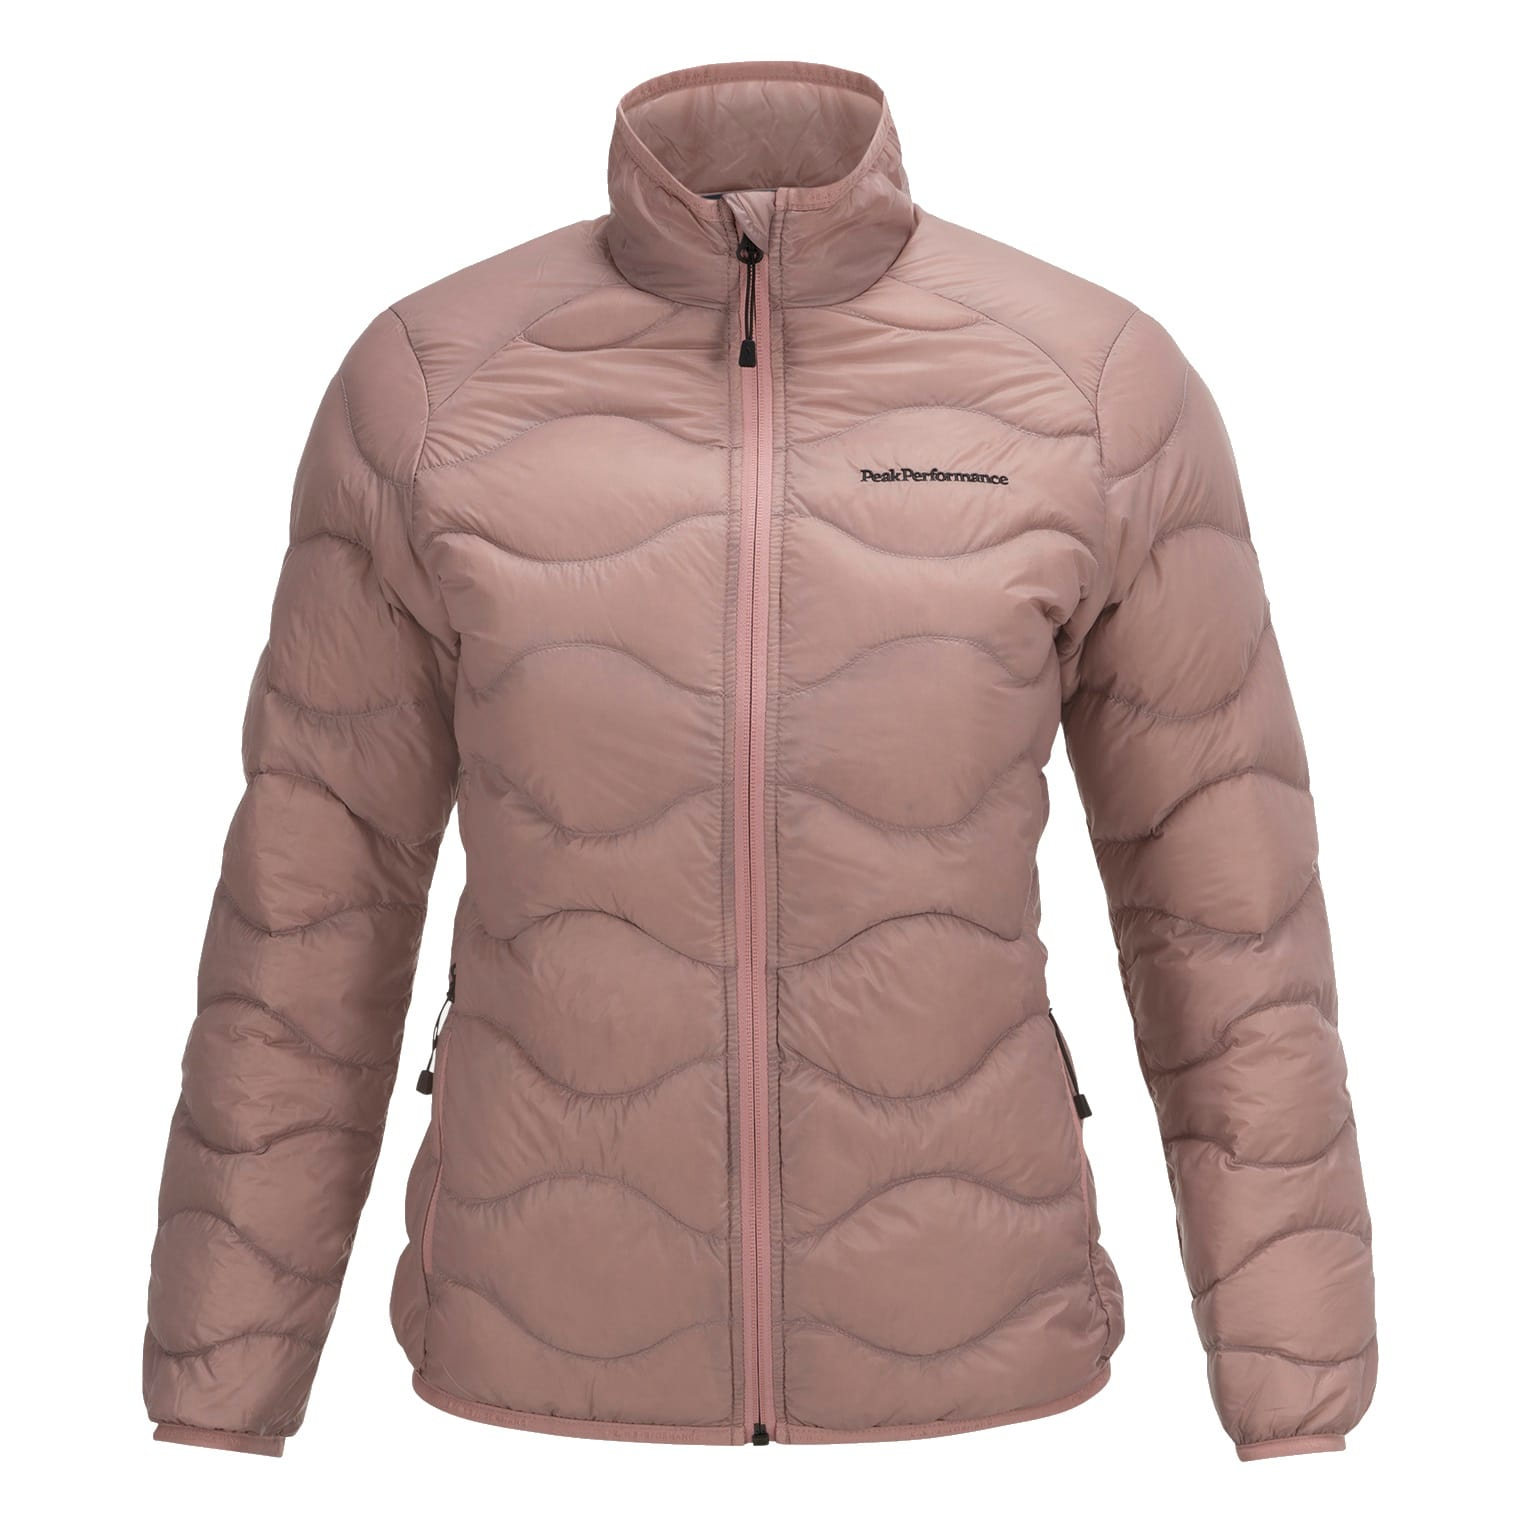 Kjøp Peak Performance Women's Helium Jacket fra Outnorth